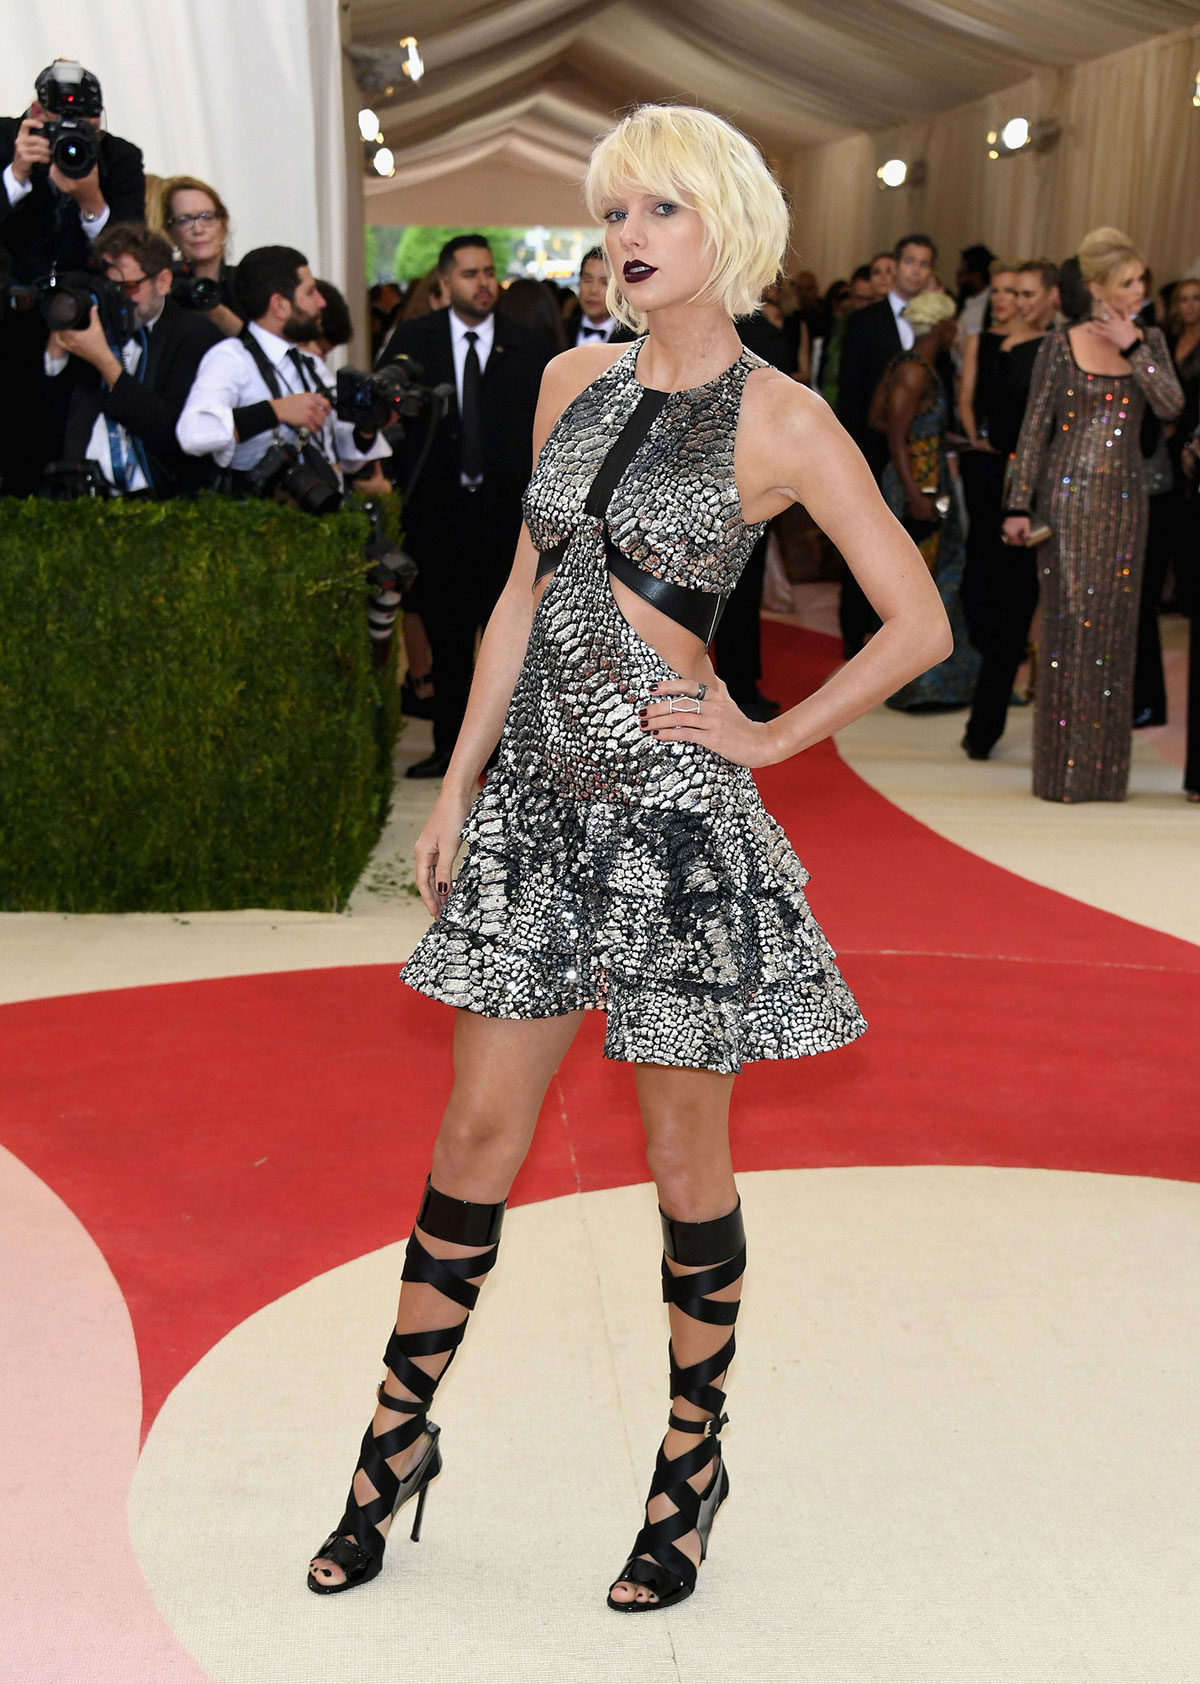 Co-chair, Taylor Swift, channeled Blade Runner for the Manux X Machina themed gala.